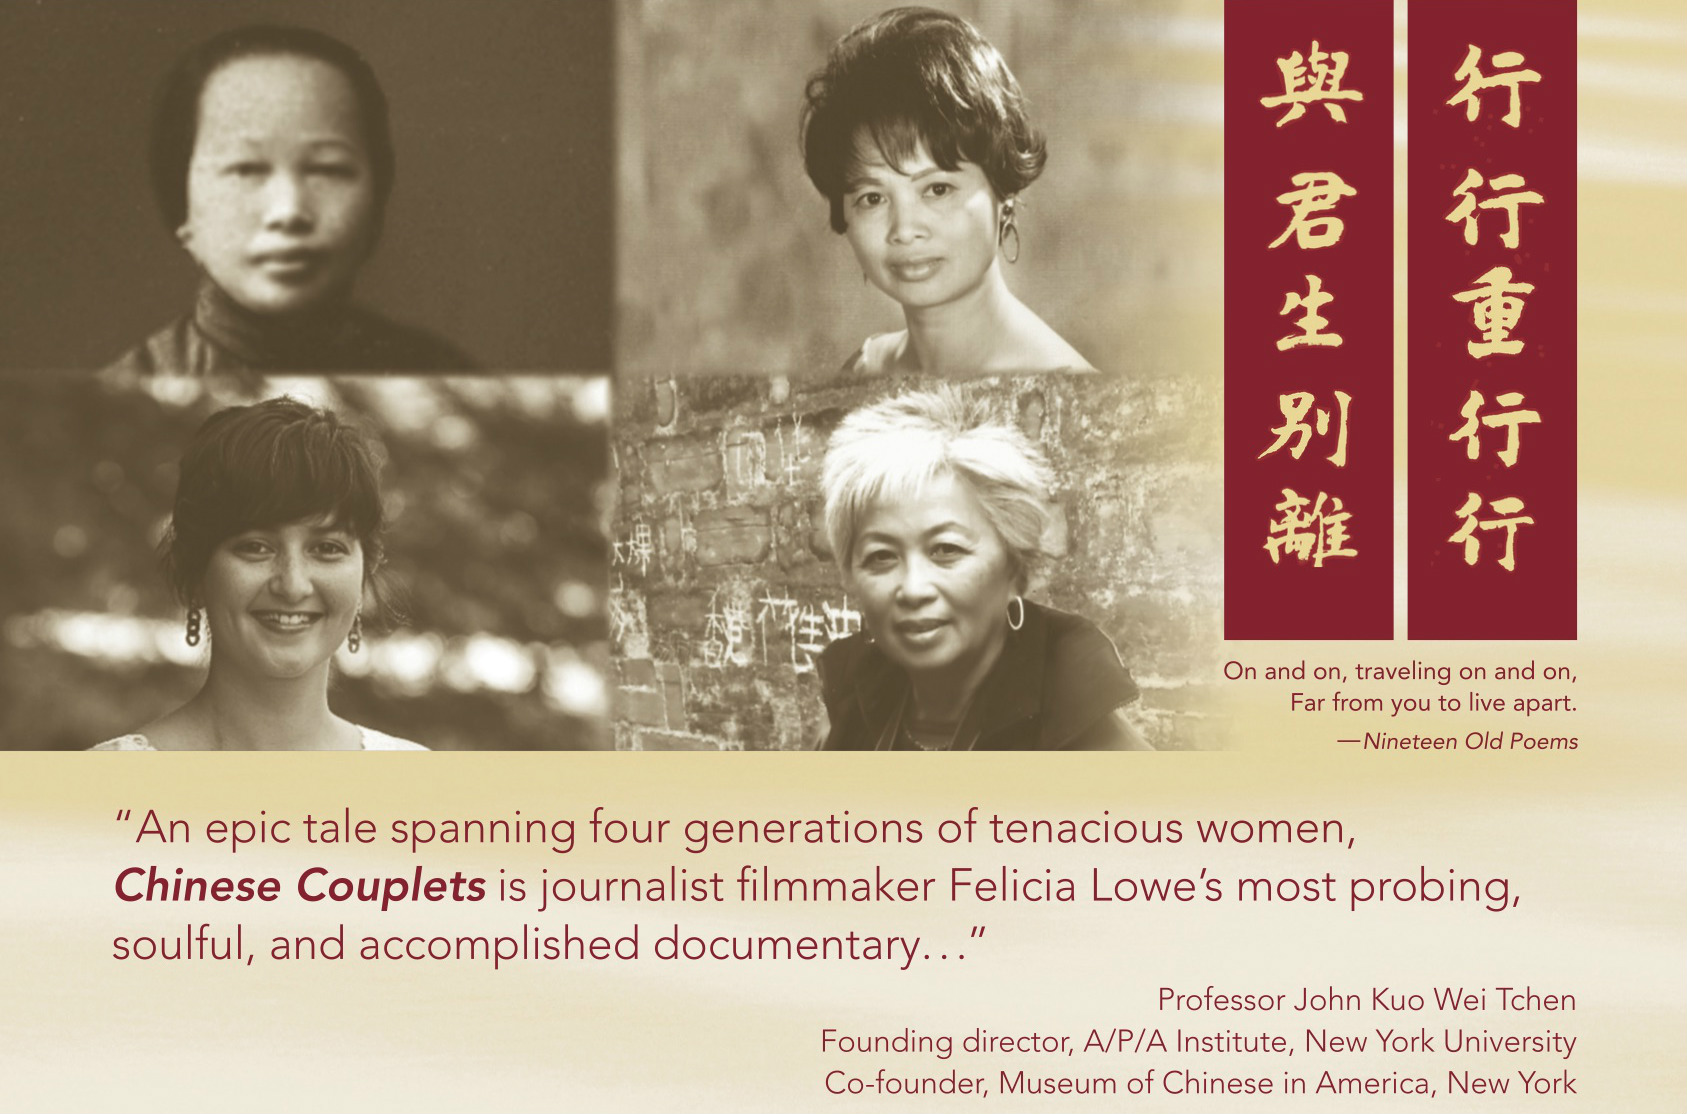 Chinese Couplets - Felicia Lowe